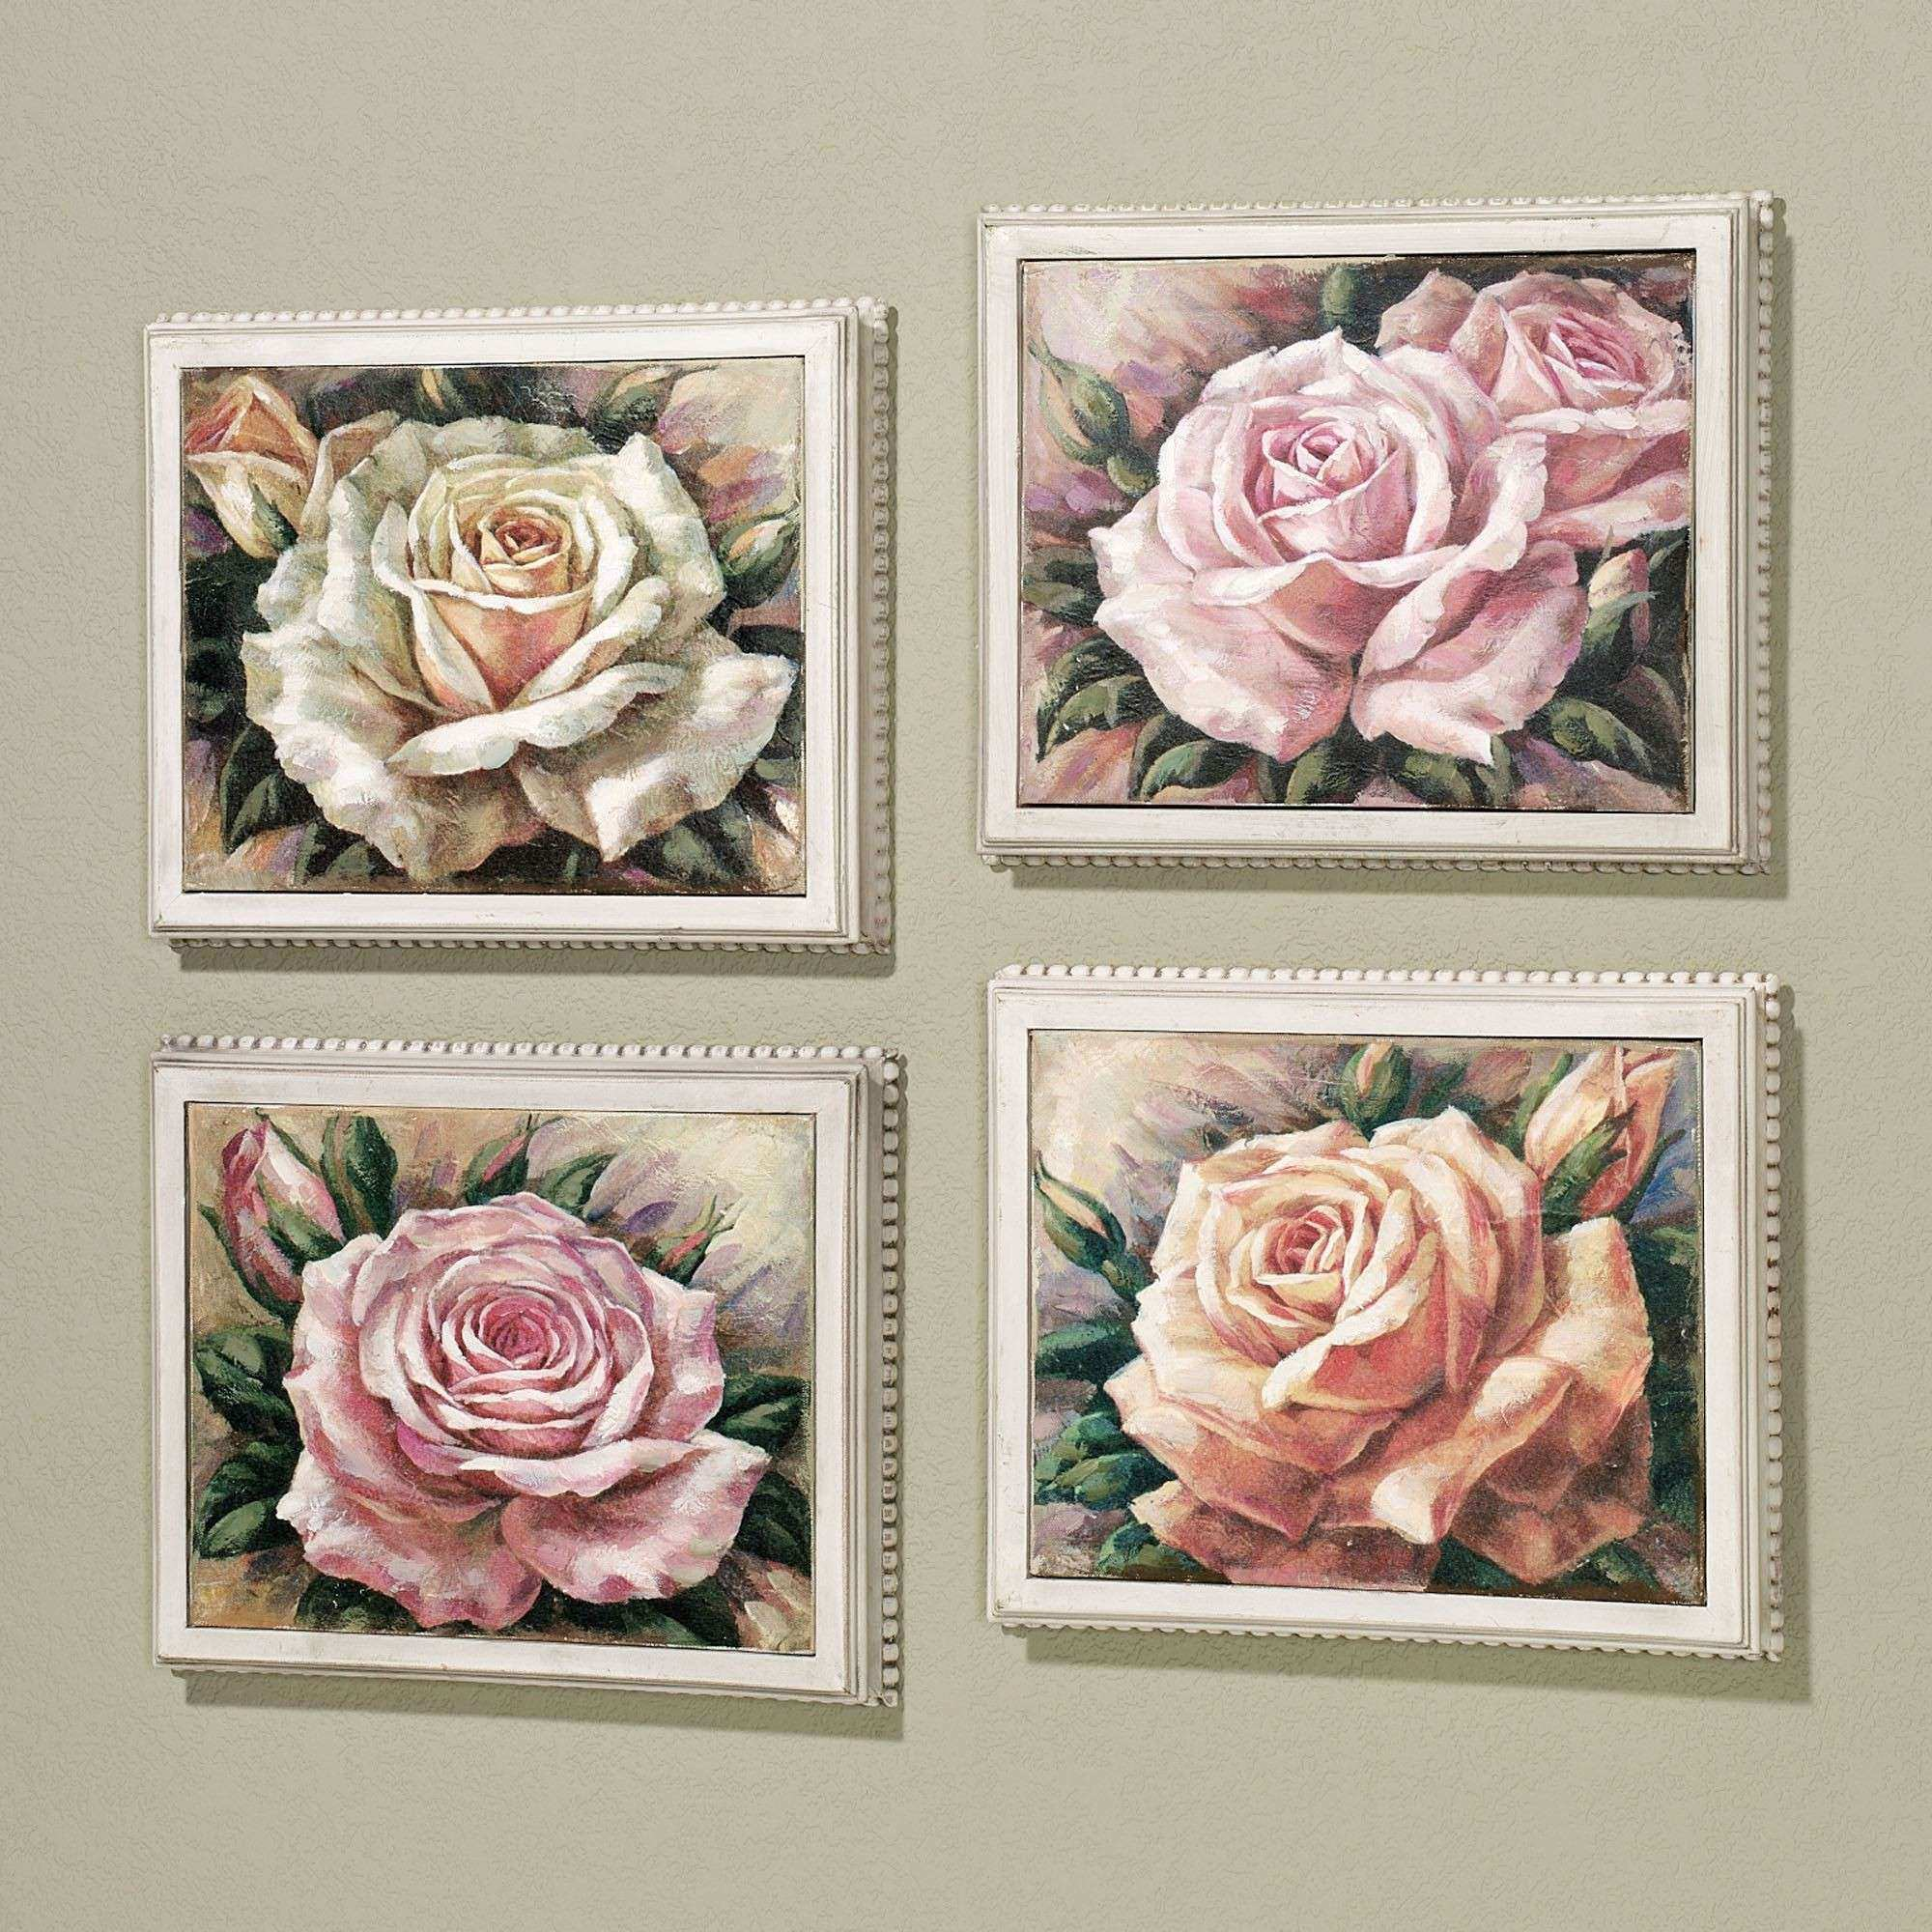 paper decor on colorful images ideas wall asiabb backdrops d fancy rose com metal art flower white pap